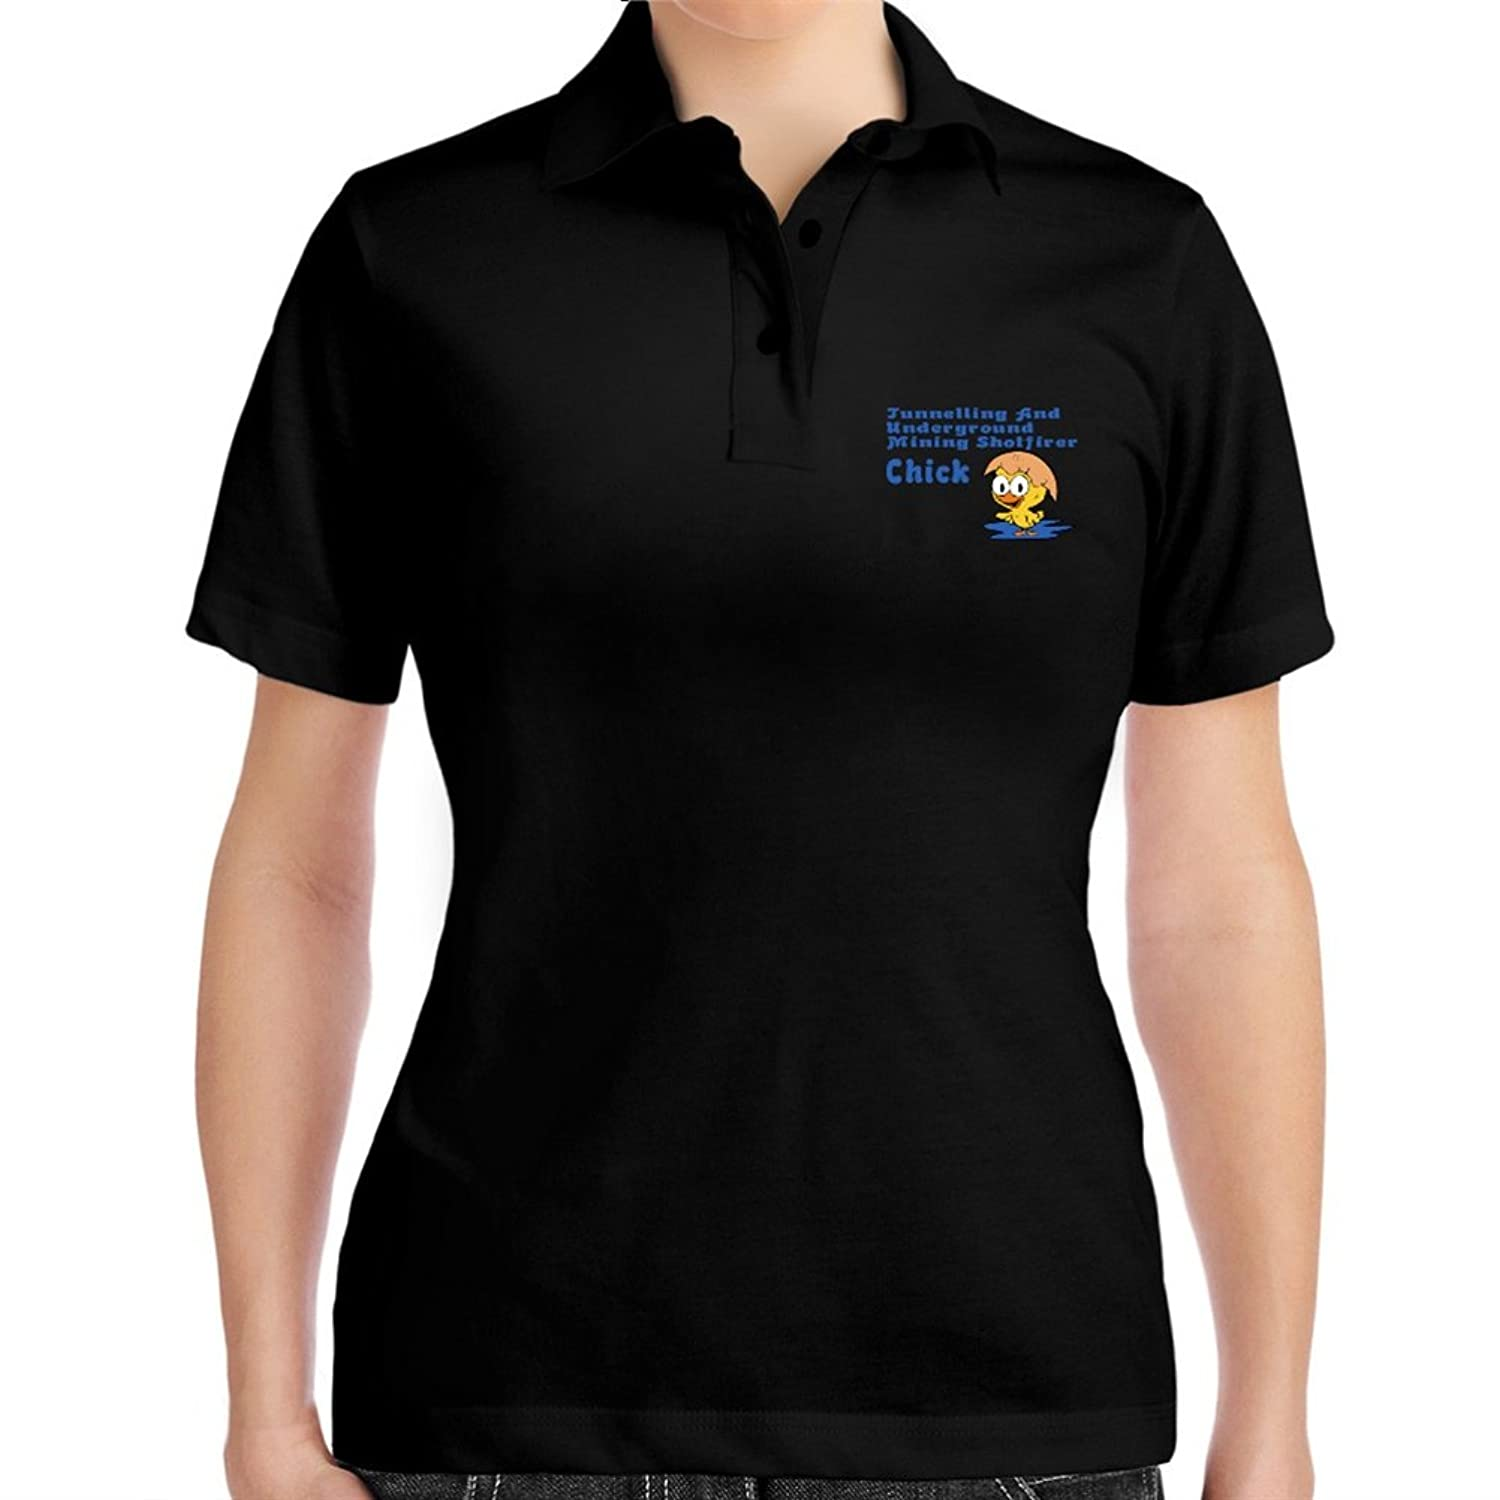 Tunnelling And Underground Mining Shotfirer chick Women Polo Shirt